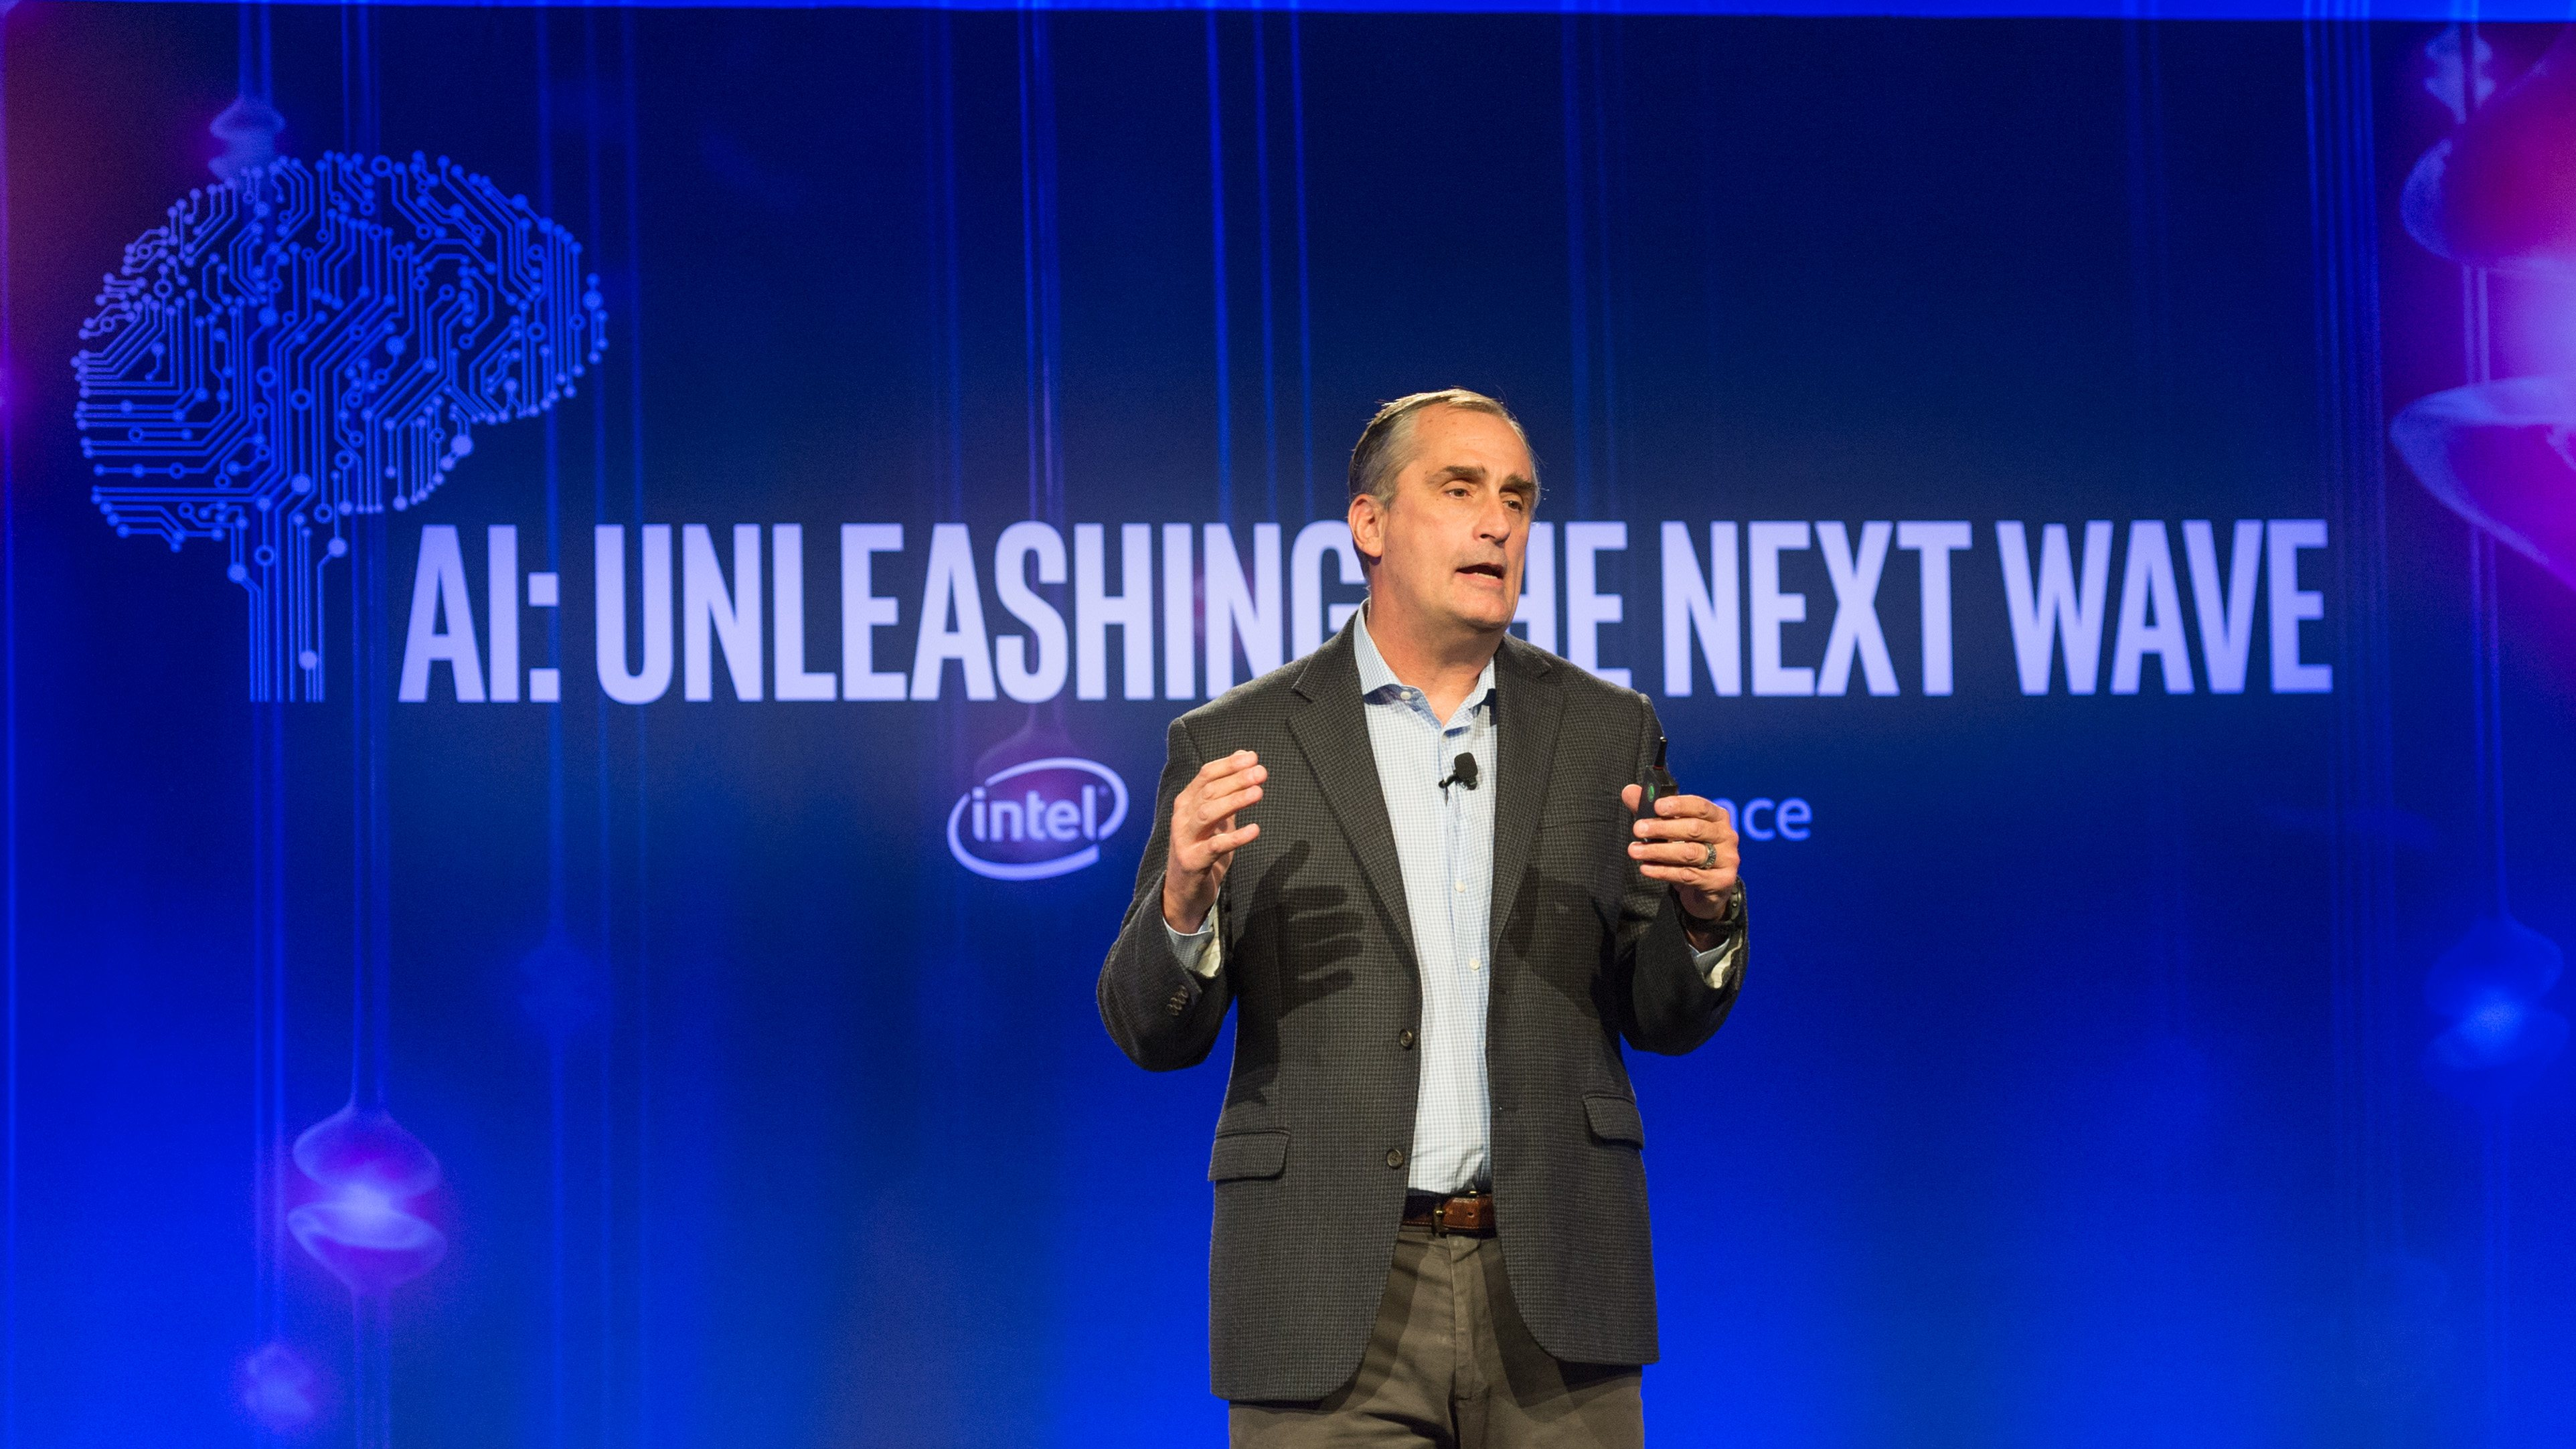 Intel CEO Brian Krzanich shares Intel's vision and strategy for artificial intelligence